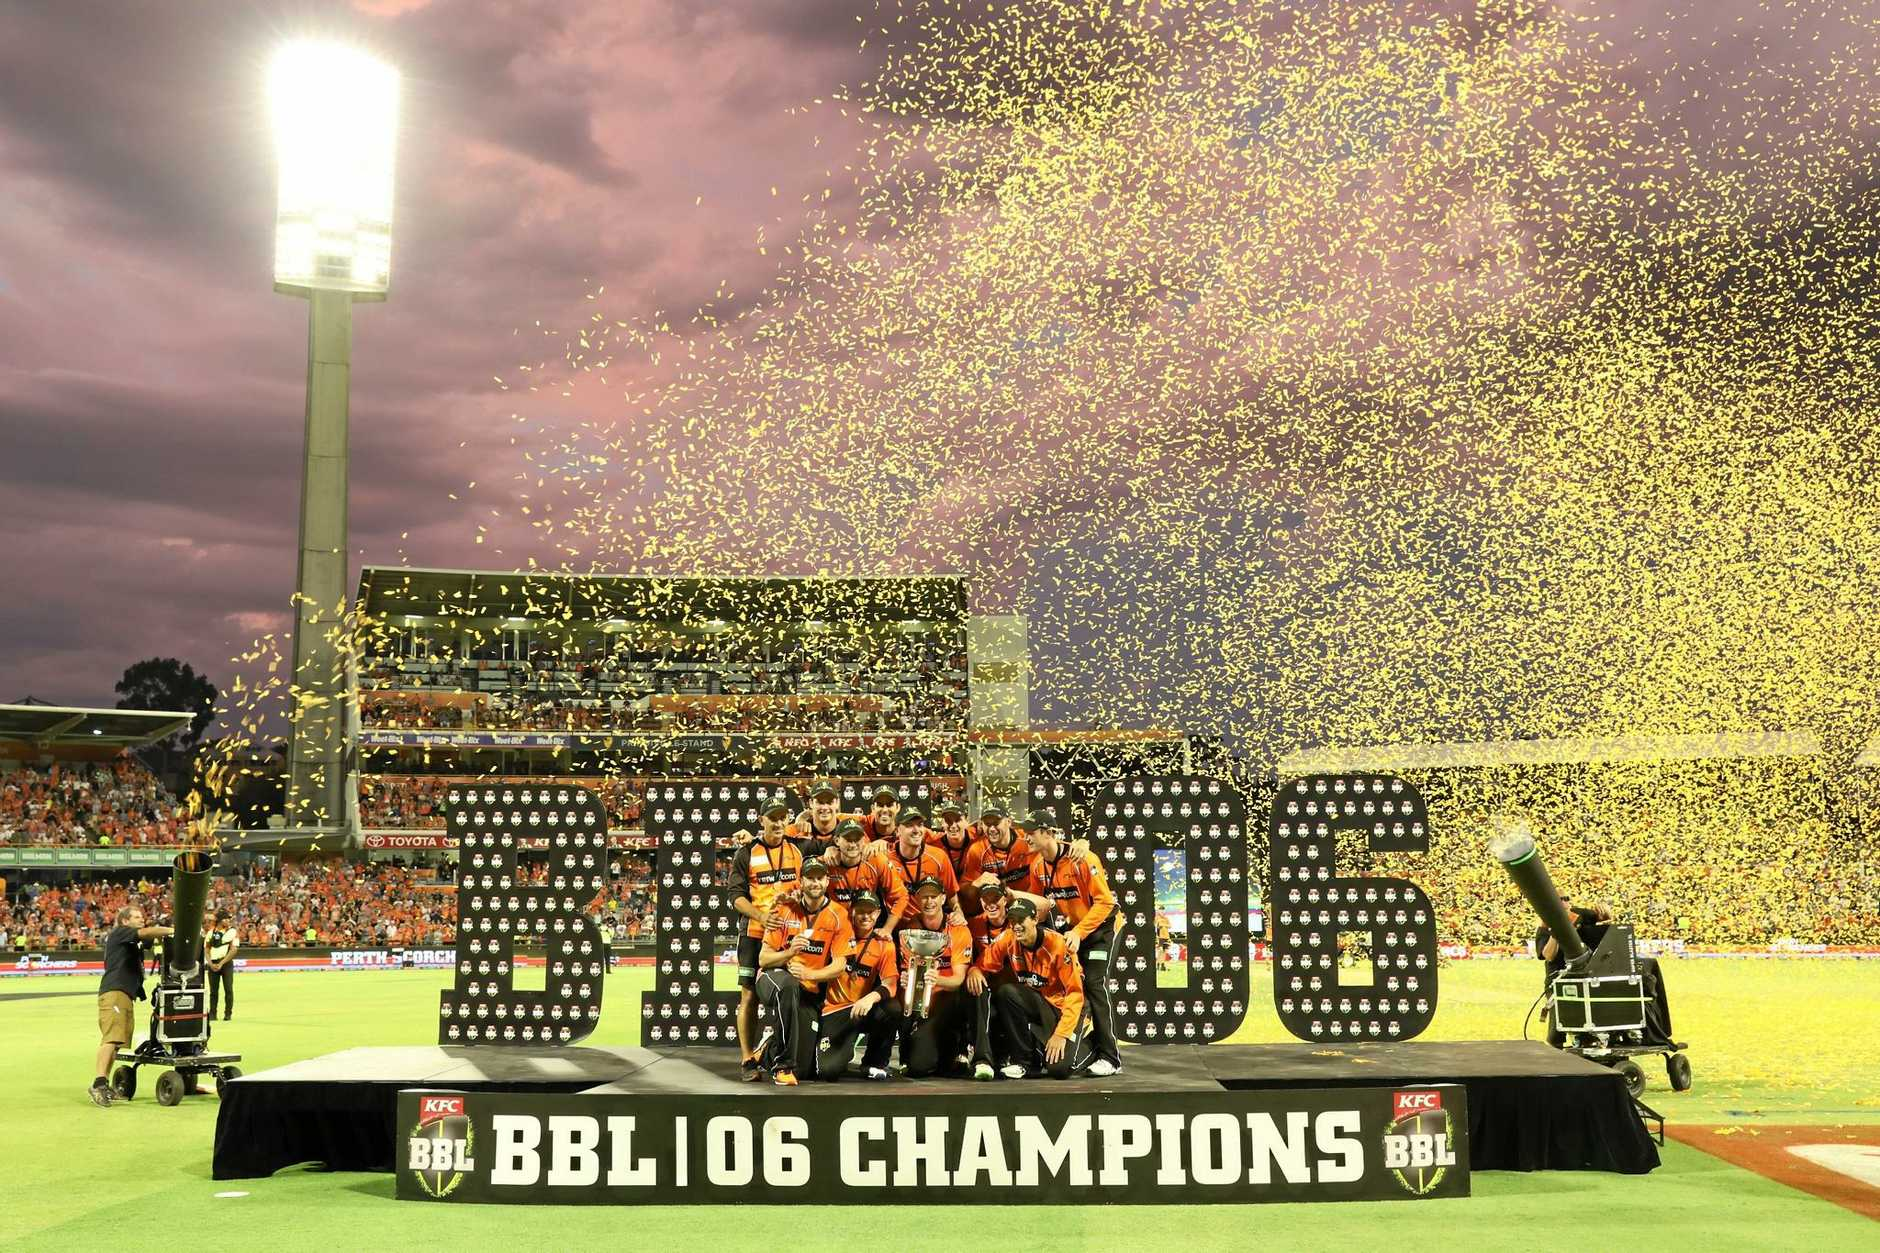 The Big Bash League helped bring cricket back from the brink in the Australian sporting market.